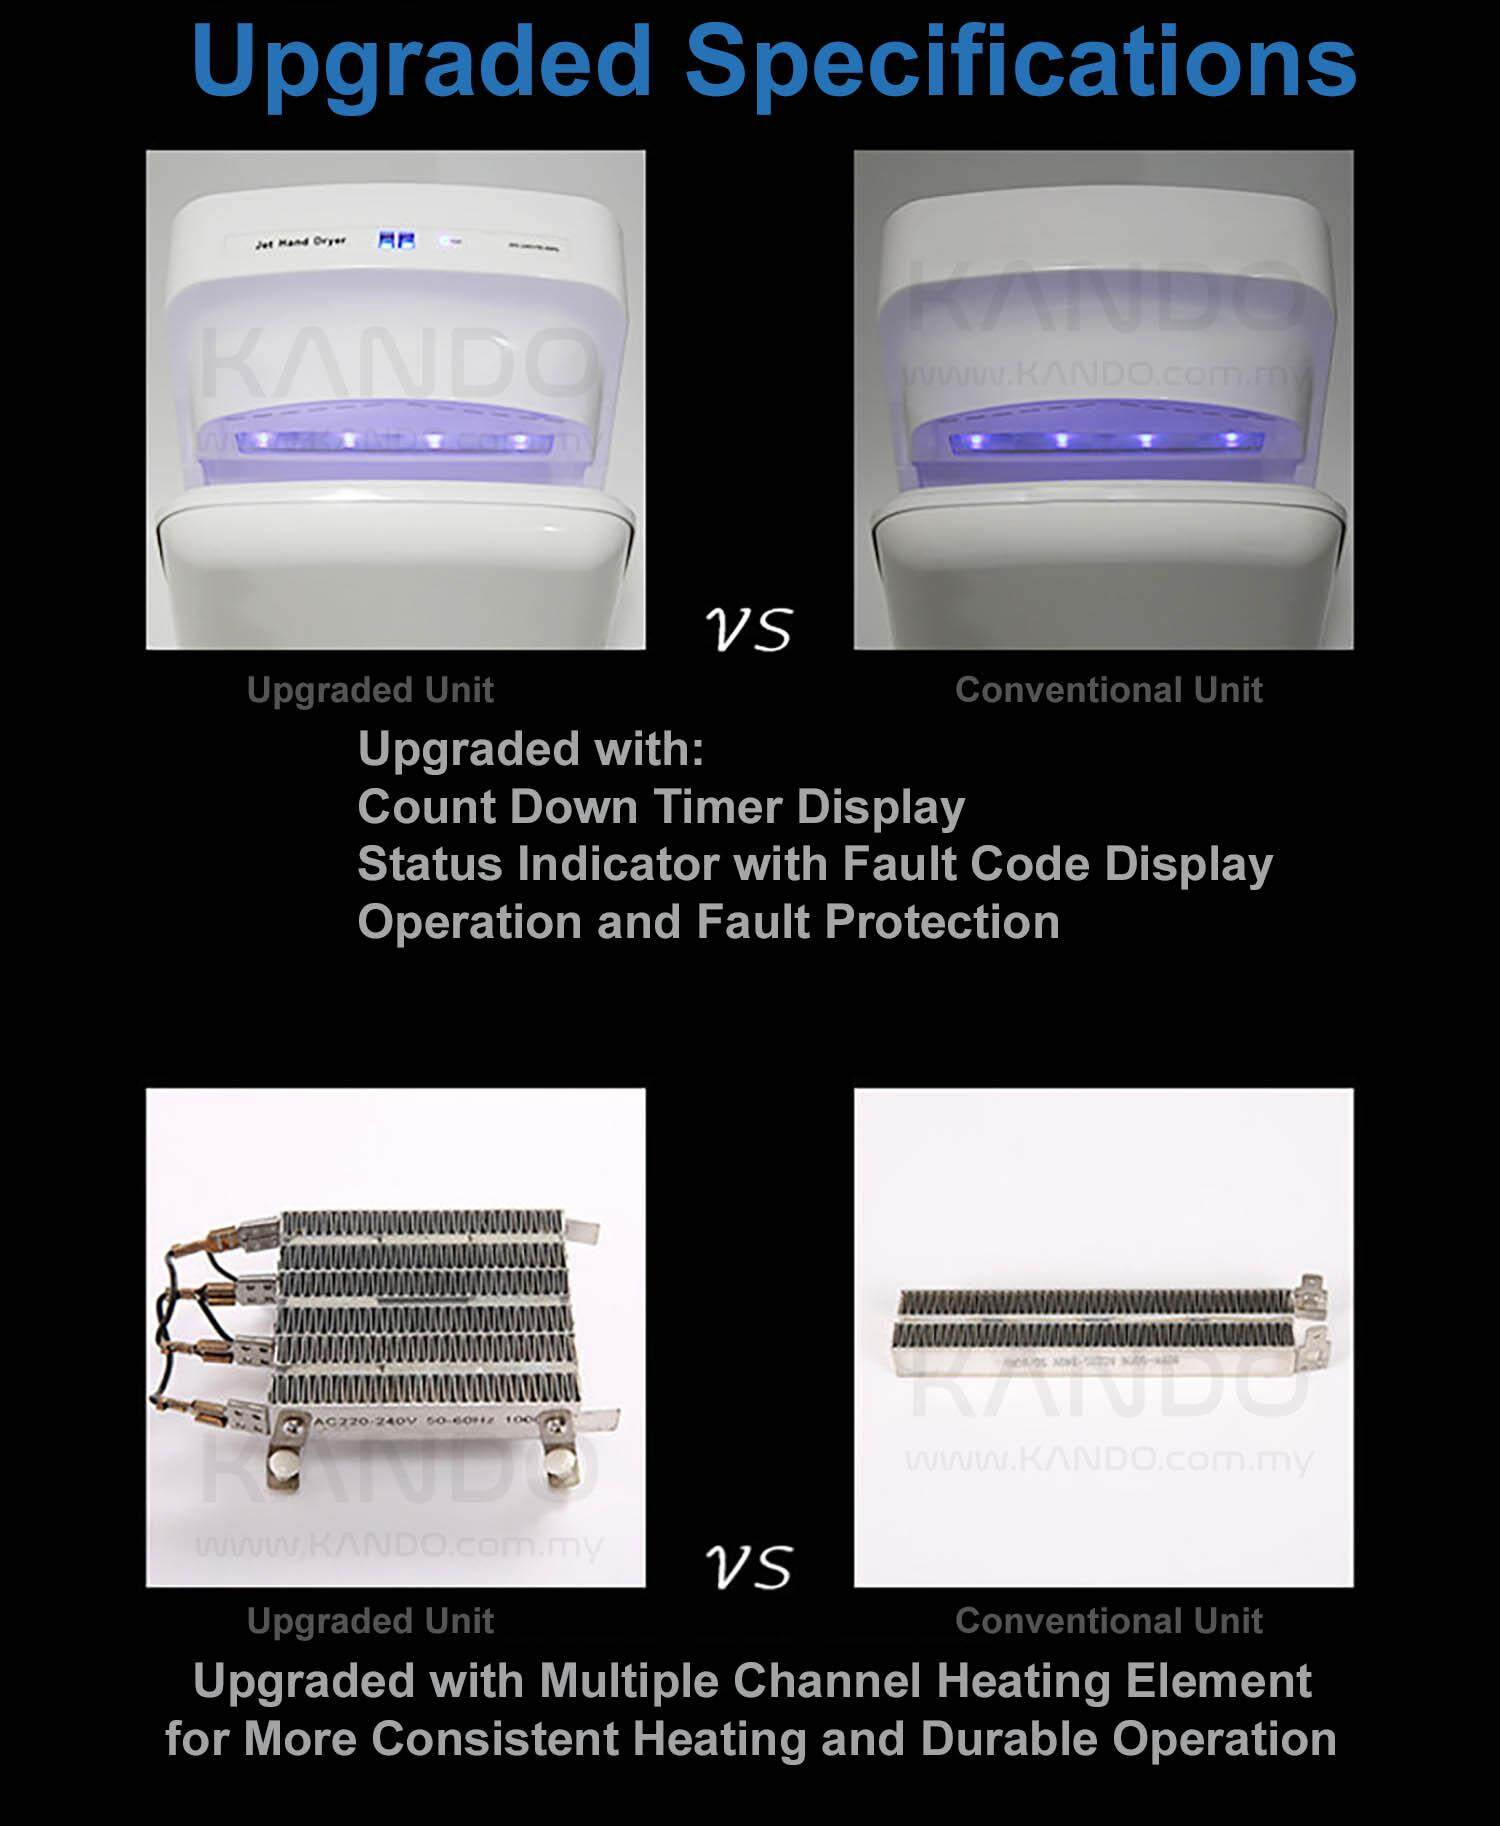 [MALAYSIA] Dual Jet Hand Dryer 1650W with Air Blade Hand Dryer Infrared Sensor Air Drier Industrial Hand Drier 6 SECONDS DRYER Jet Hand Dryer Jet Hand Towel Injection Hand Dryer